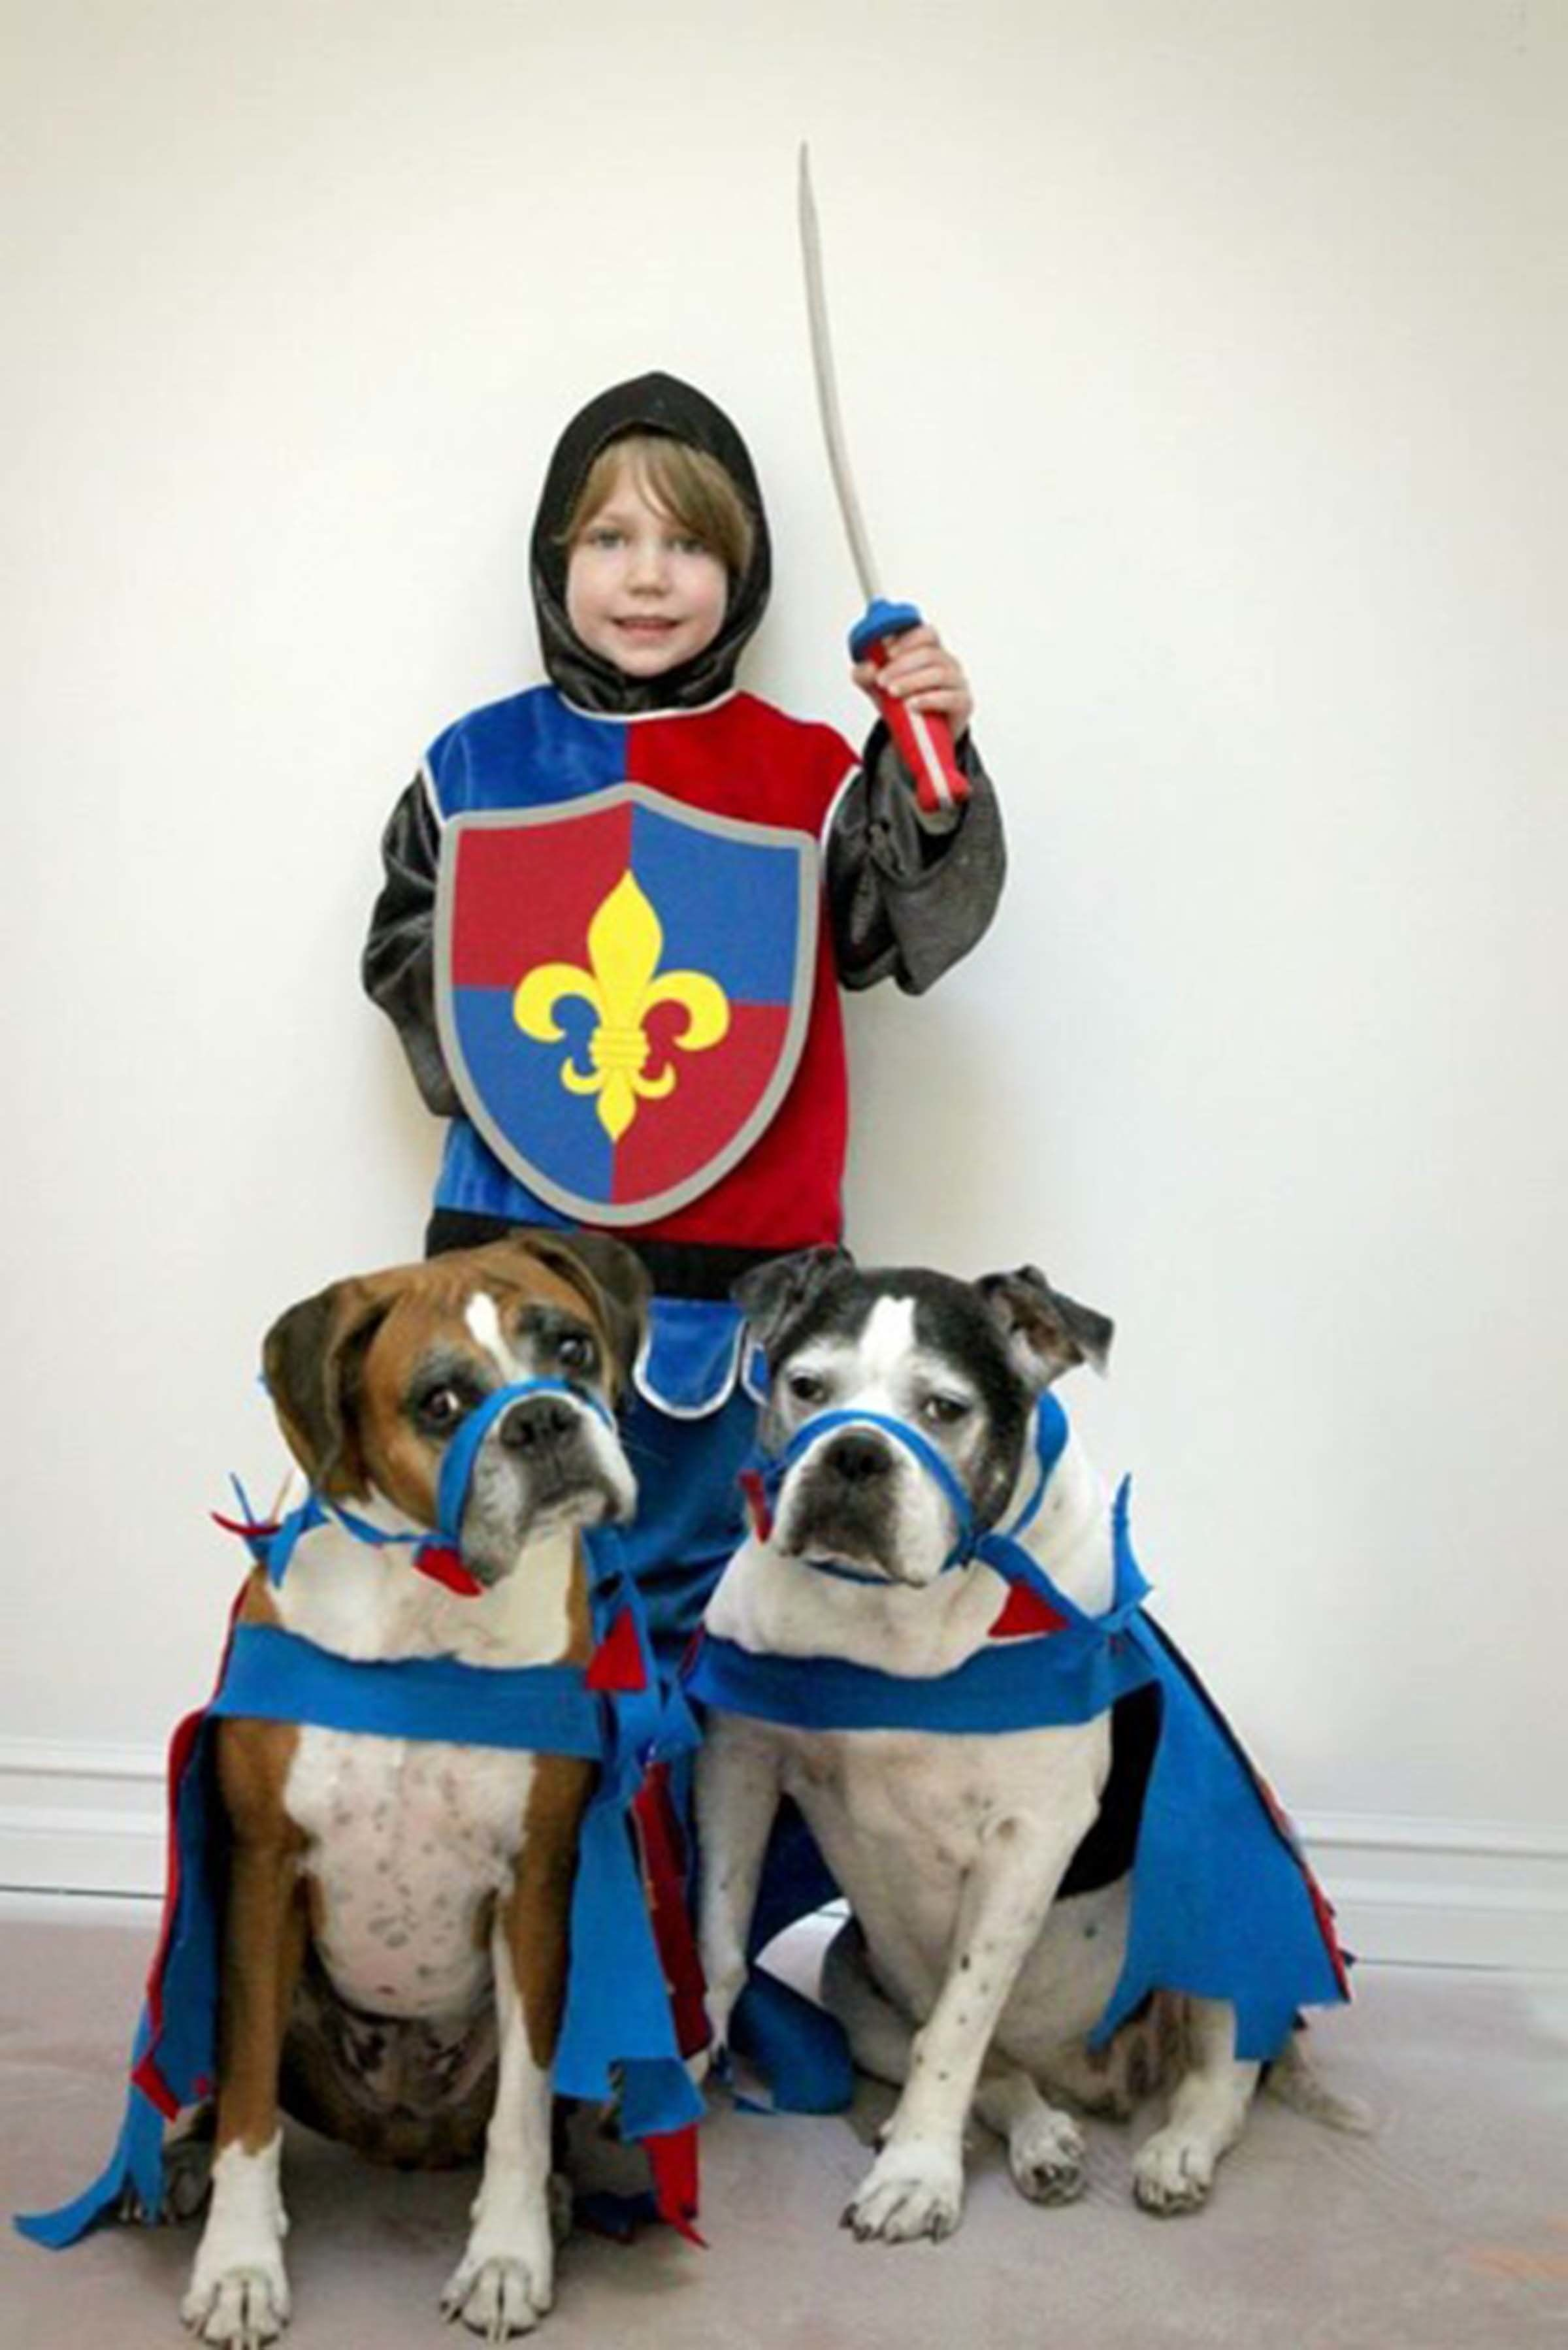 Courtesy ofu0026nbsp;Karen Miller  sc 1 st  HuffPost & 23 Dog And Kid Halloween Costumes That Will Make You Squeal | HuffPost